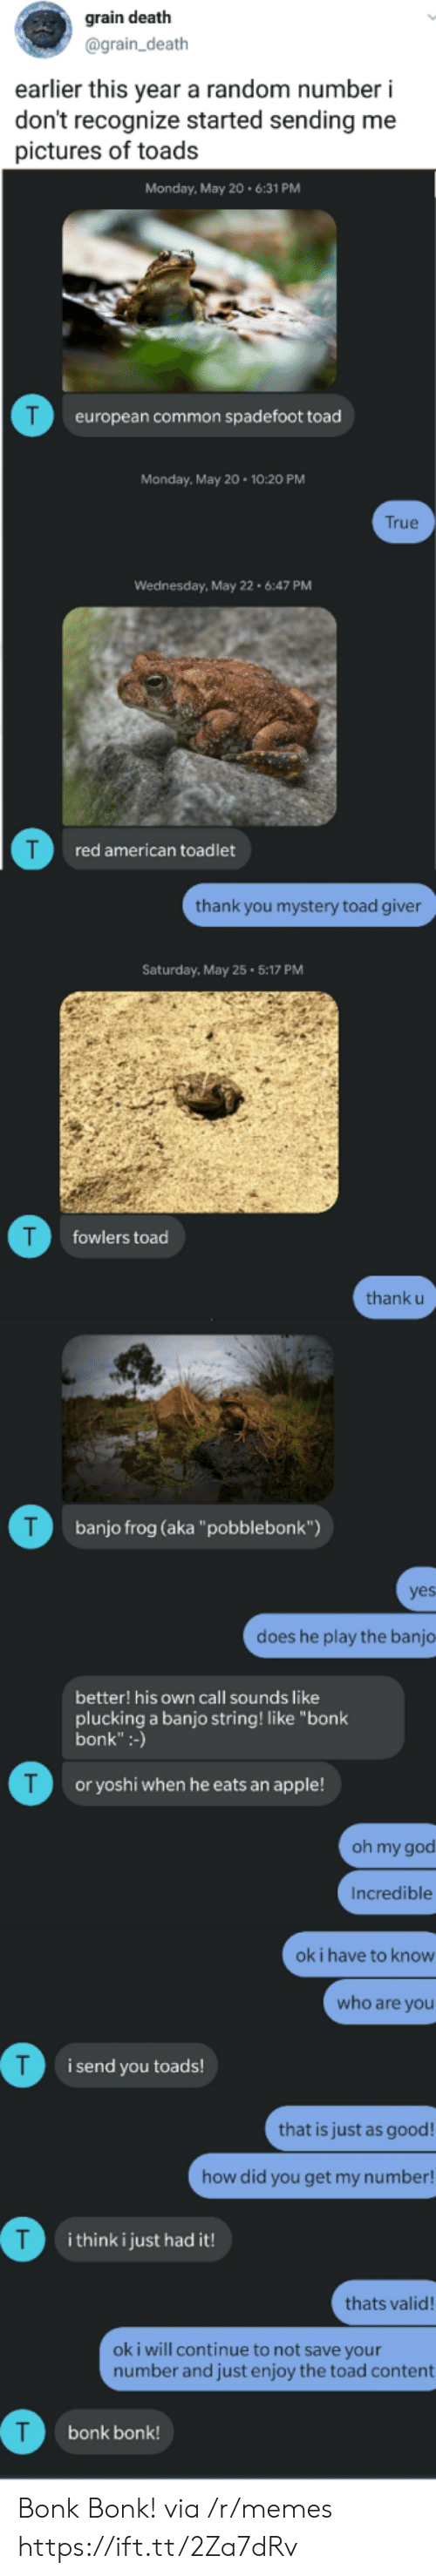 "Thank U: grain death  @grain_death  earlier this year a random number i  don't recognize started sending me  pictures of toads  Monday, May 20.6:31 PM  T  european common spadefoot toad  Monday, May 20 10:20 PM  True  Wednesday, May 22 6:47 PM  red american toadlet  thank you mystery toad giver  Saturday, May 25 5:17 PM  T  fowlers toad  thank u  T  banjo frog (aka""pobblebonk"")  yes  does he play the banjo  better! his own call sounds like  plucking a banjo string! like ""bonk  bonk"":-)  T  or yoshi when he eats an apple!  oh my god  Incredible  ok i have to know  who are you  i send you toads!  that is just as good!  how did you get my number!  T  i think i just had it!  thats valid!  oki will continue to not save your  number and just enjoy the toad content  bonk bonk! Bonk Bonk! via /r/memes https://ift.tt/2Za7dRv"